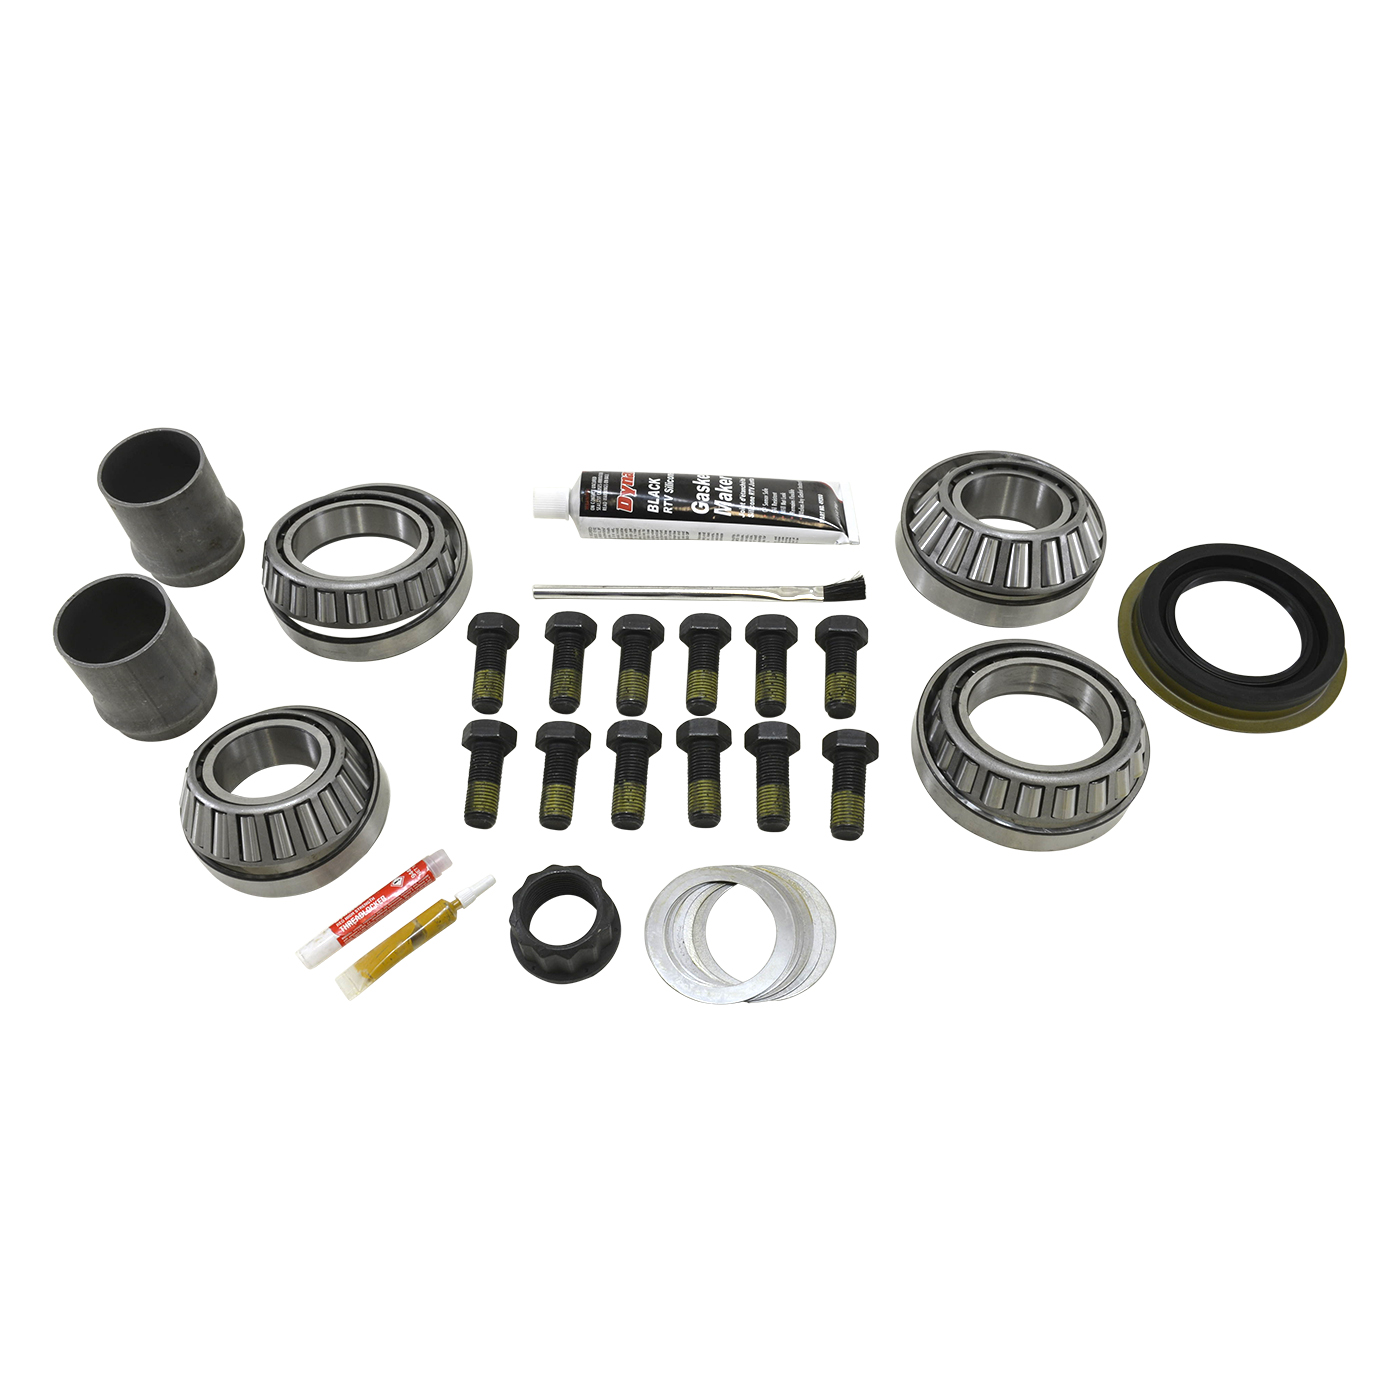 YK C10.5 - Yukon Master Overhaul kit for Chrysler 10.5